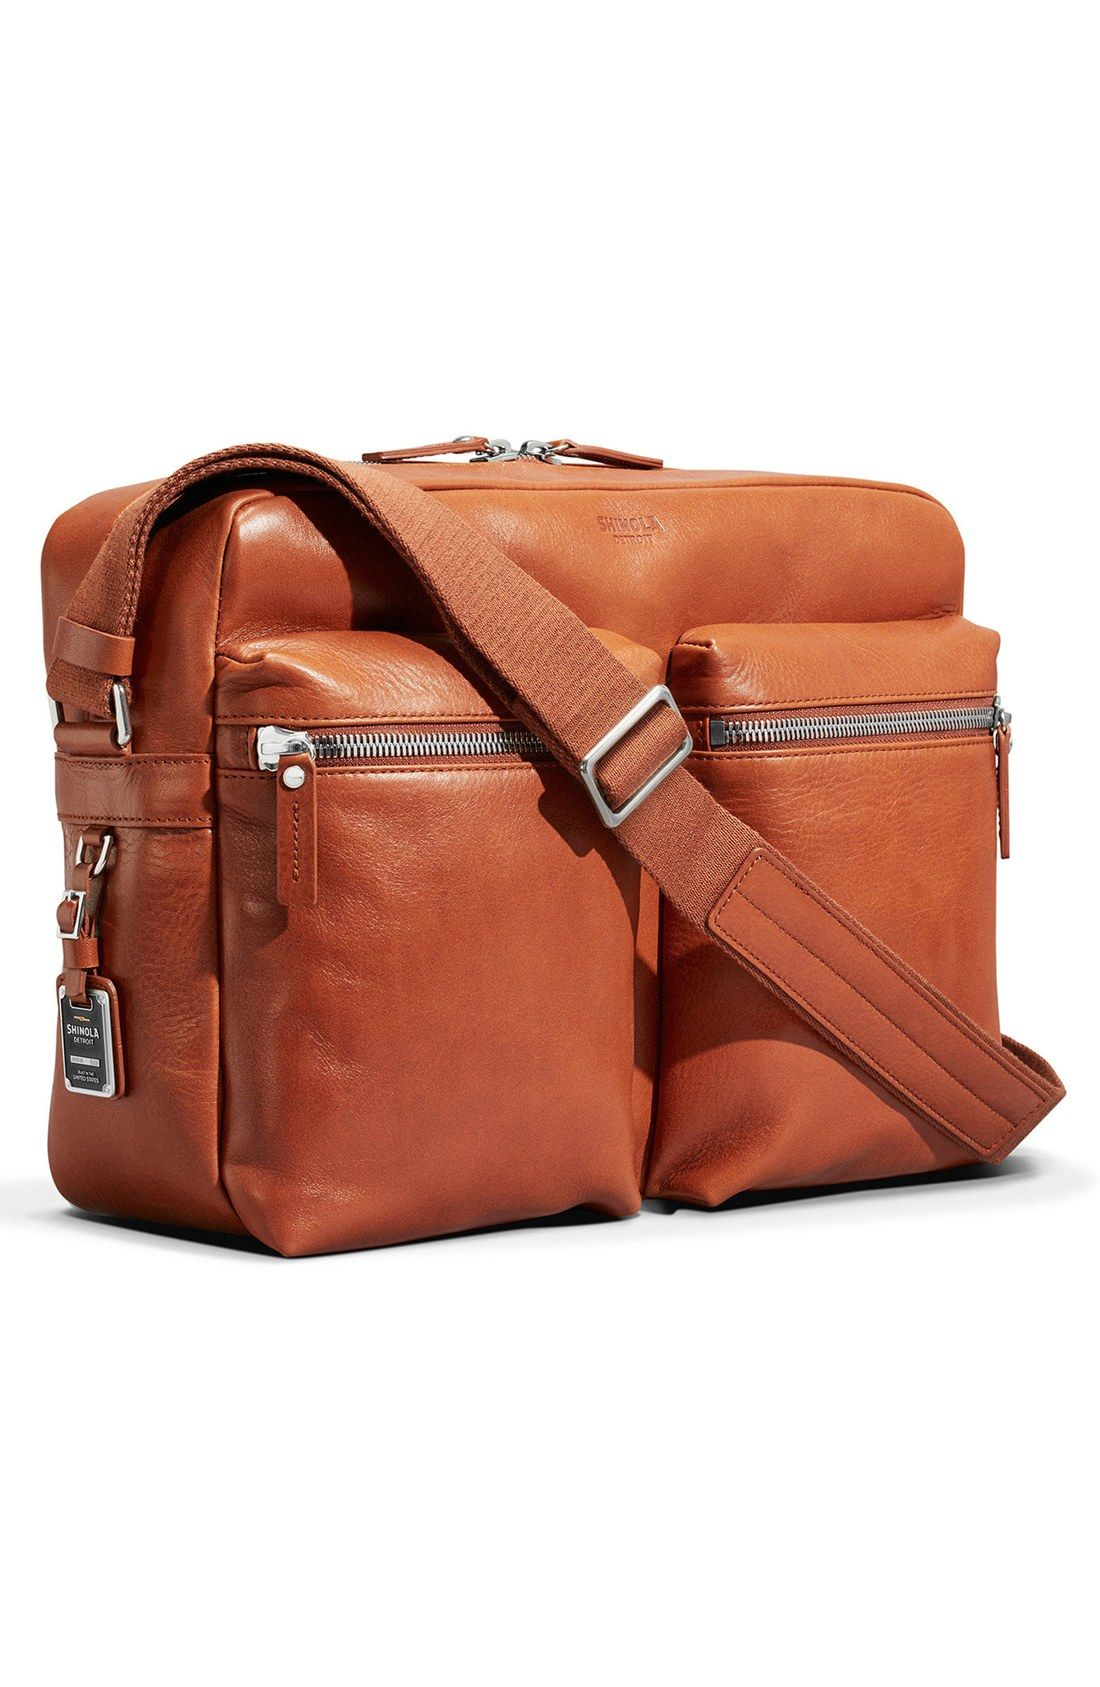 Free Shipping And Returns On Shinola Zip Top Leather Messenger Bag At Nordstrom This Handsome American Made Inspired By Vintage